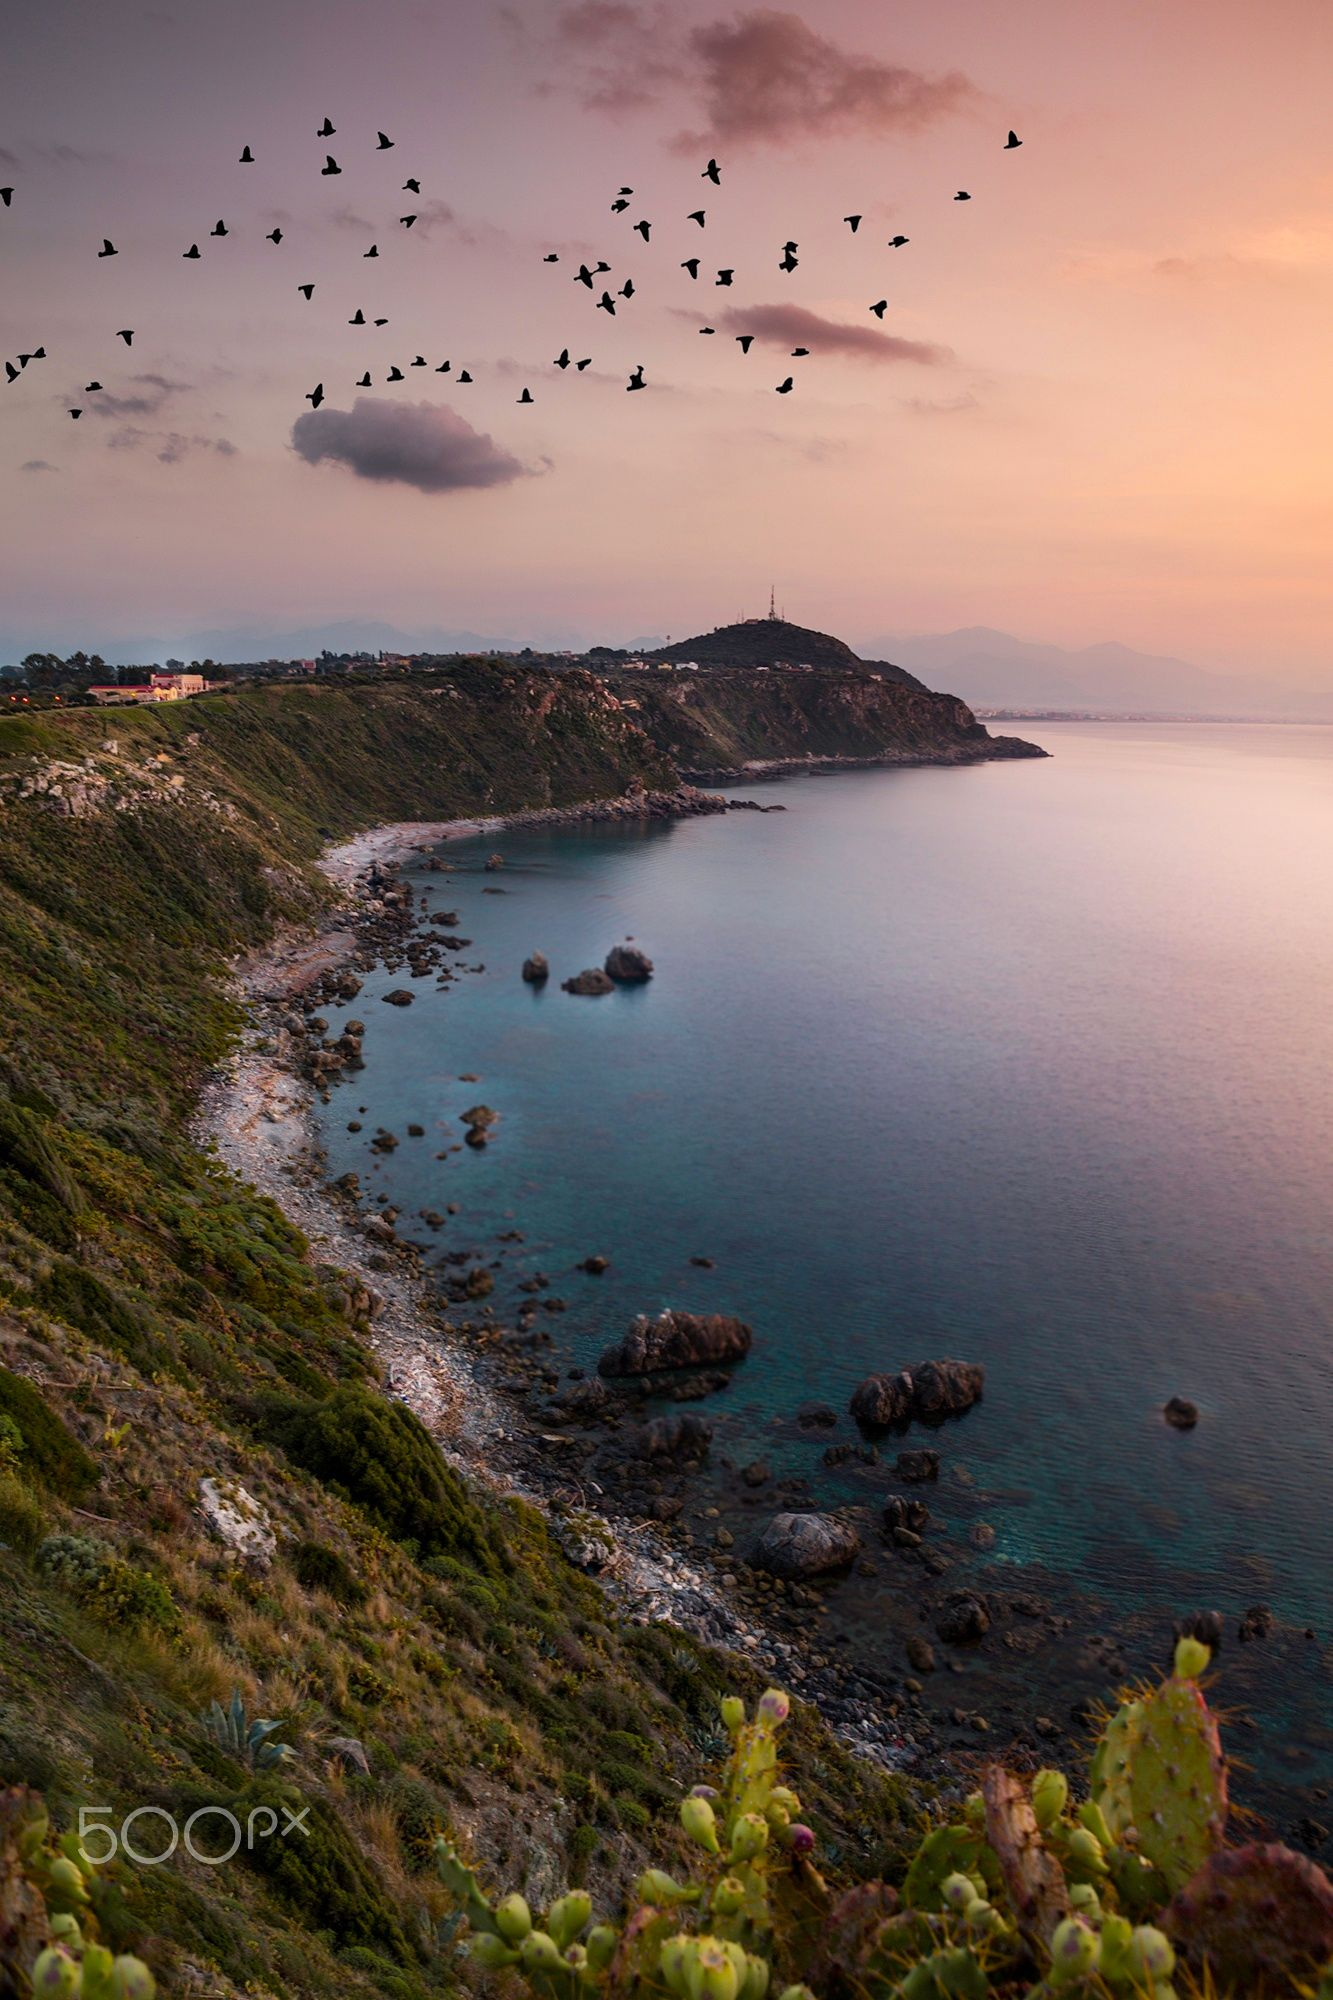 A flock of birds - A flock of birds captured in a beautiful place called Milazzo, Sicily in Italy.